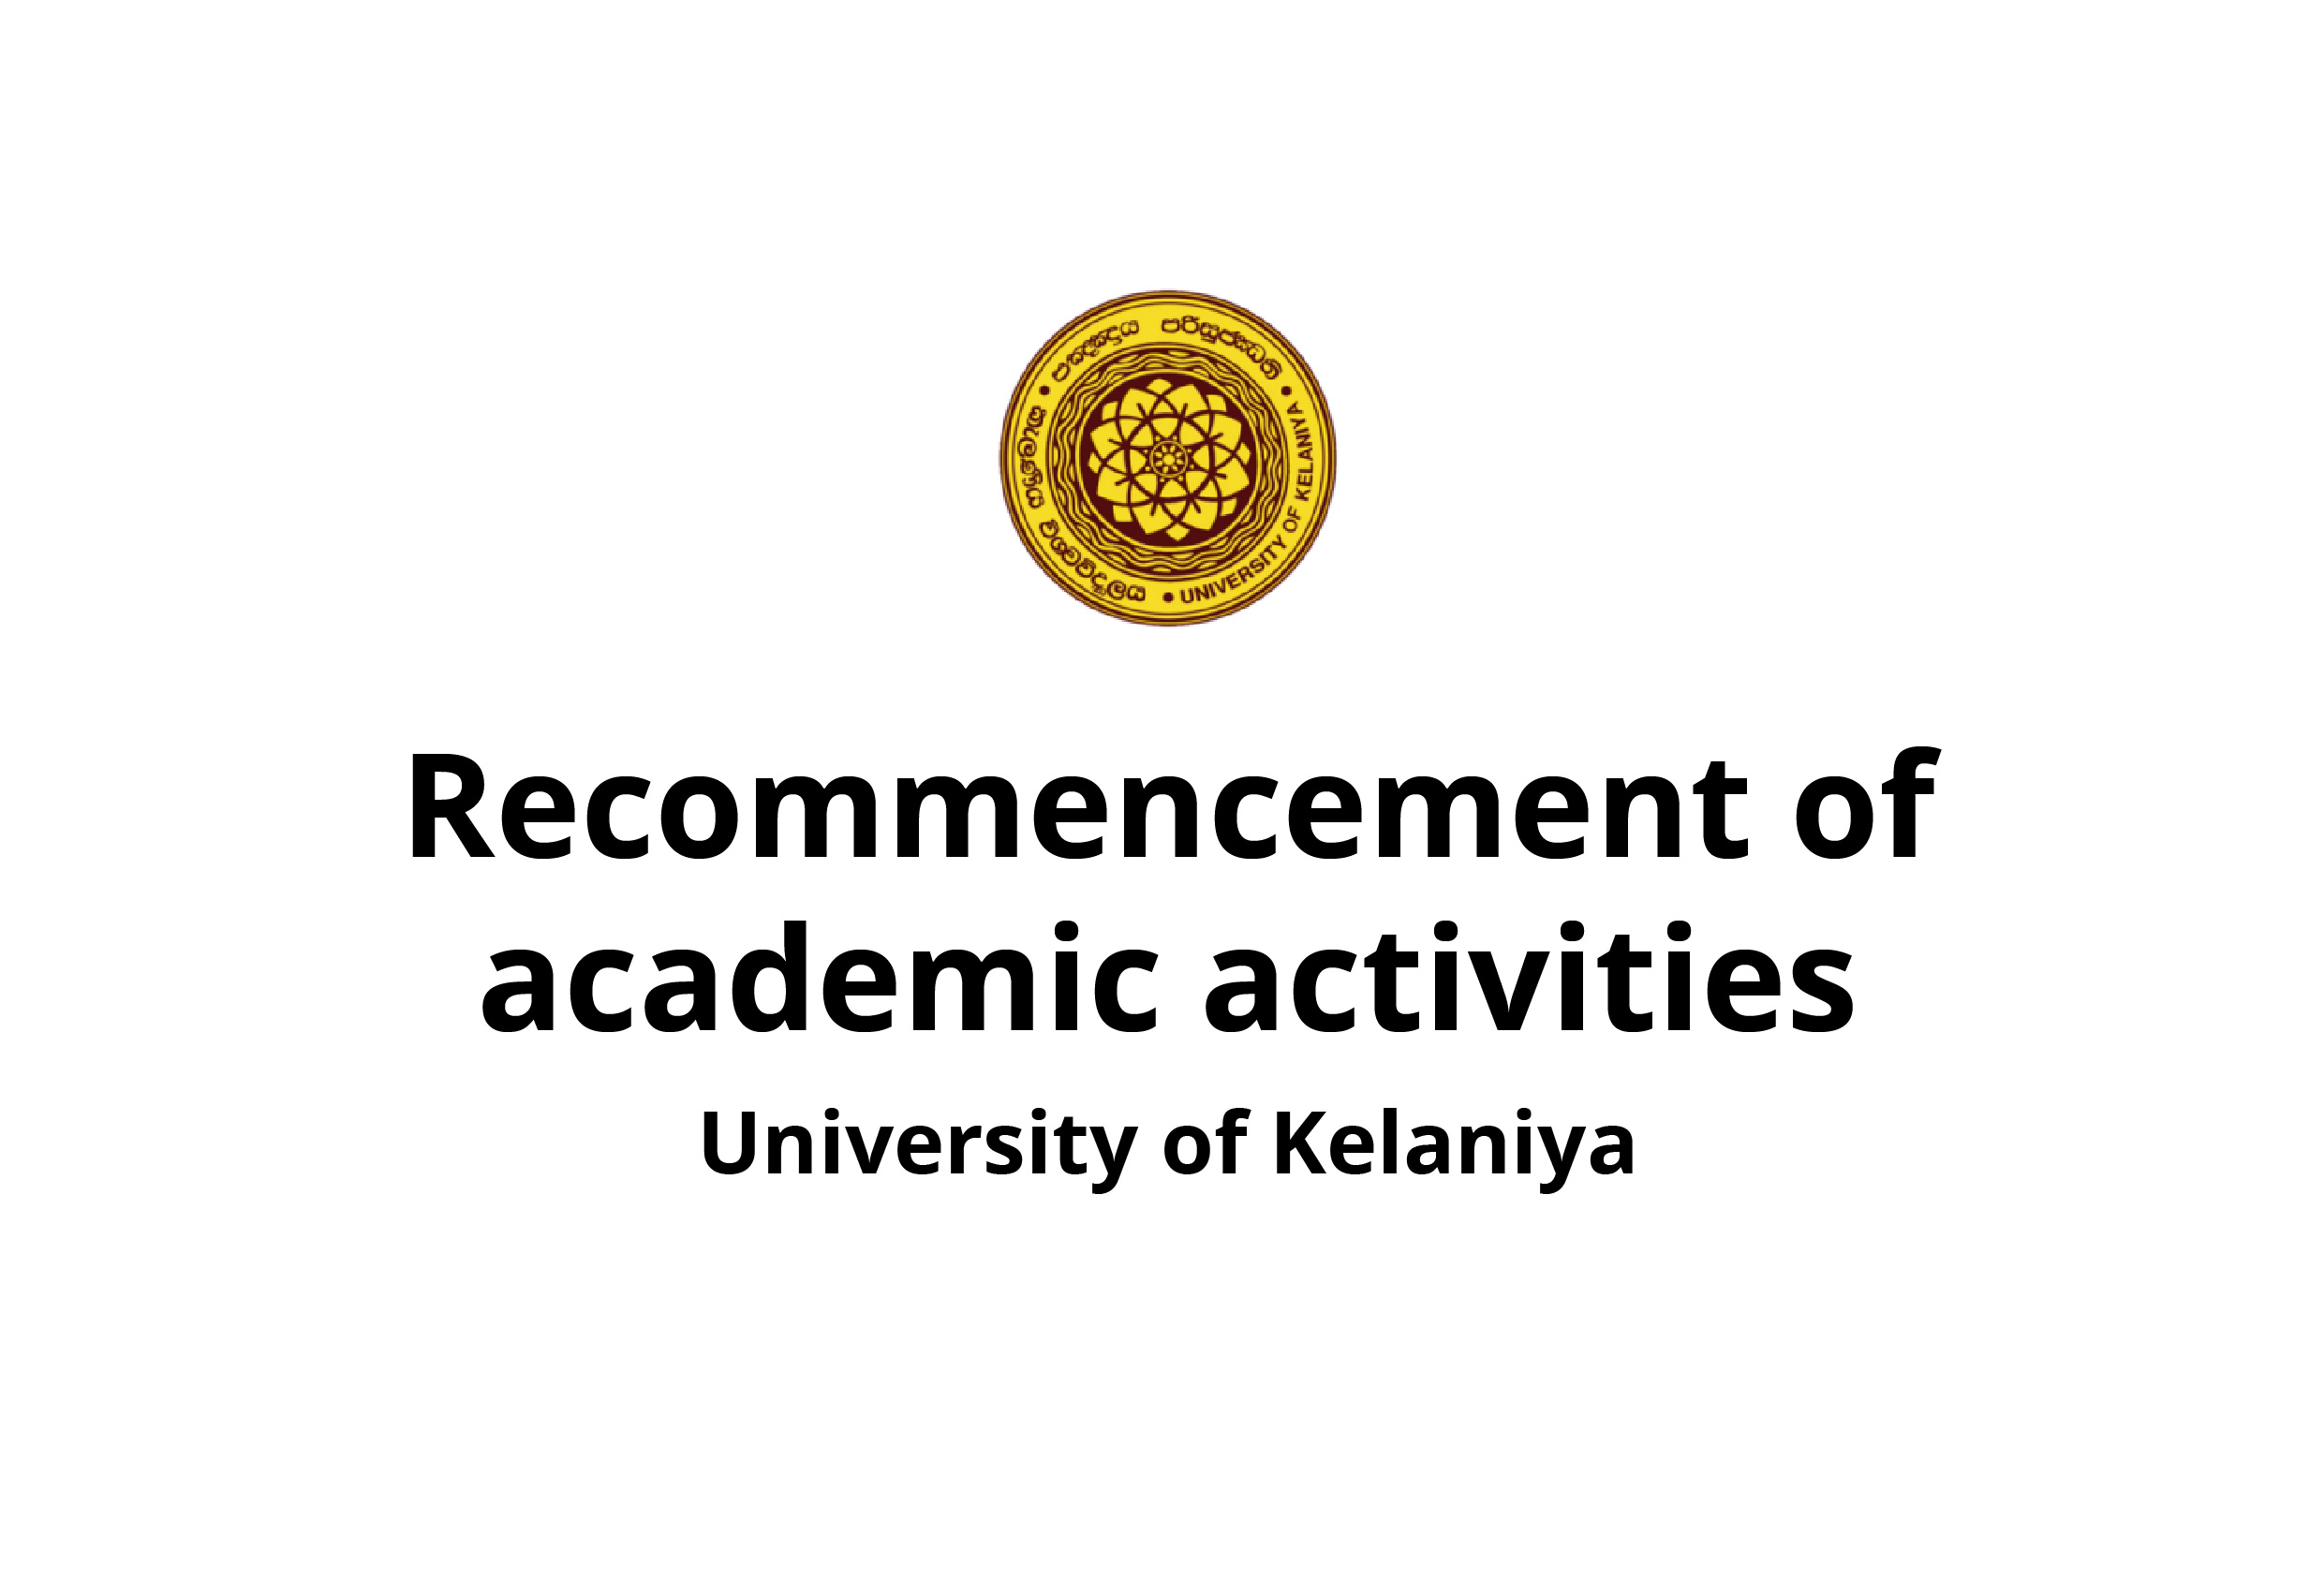 Recommencement of academic activities of University of Kelaniya